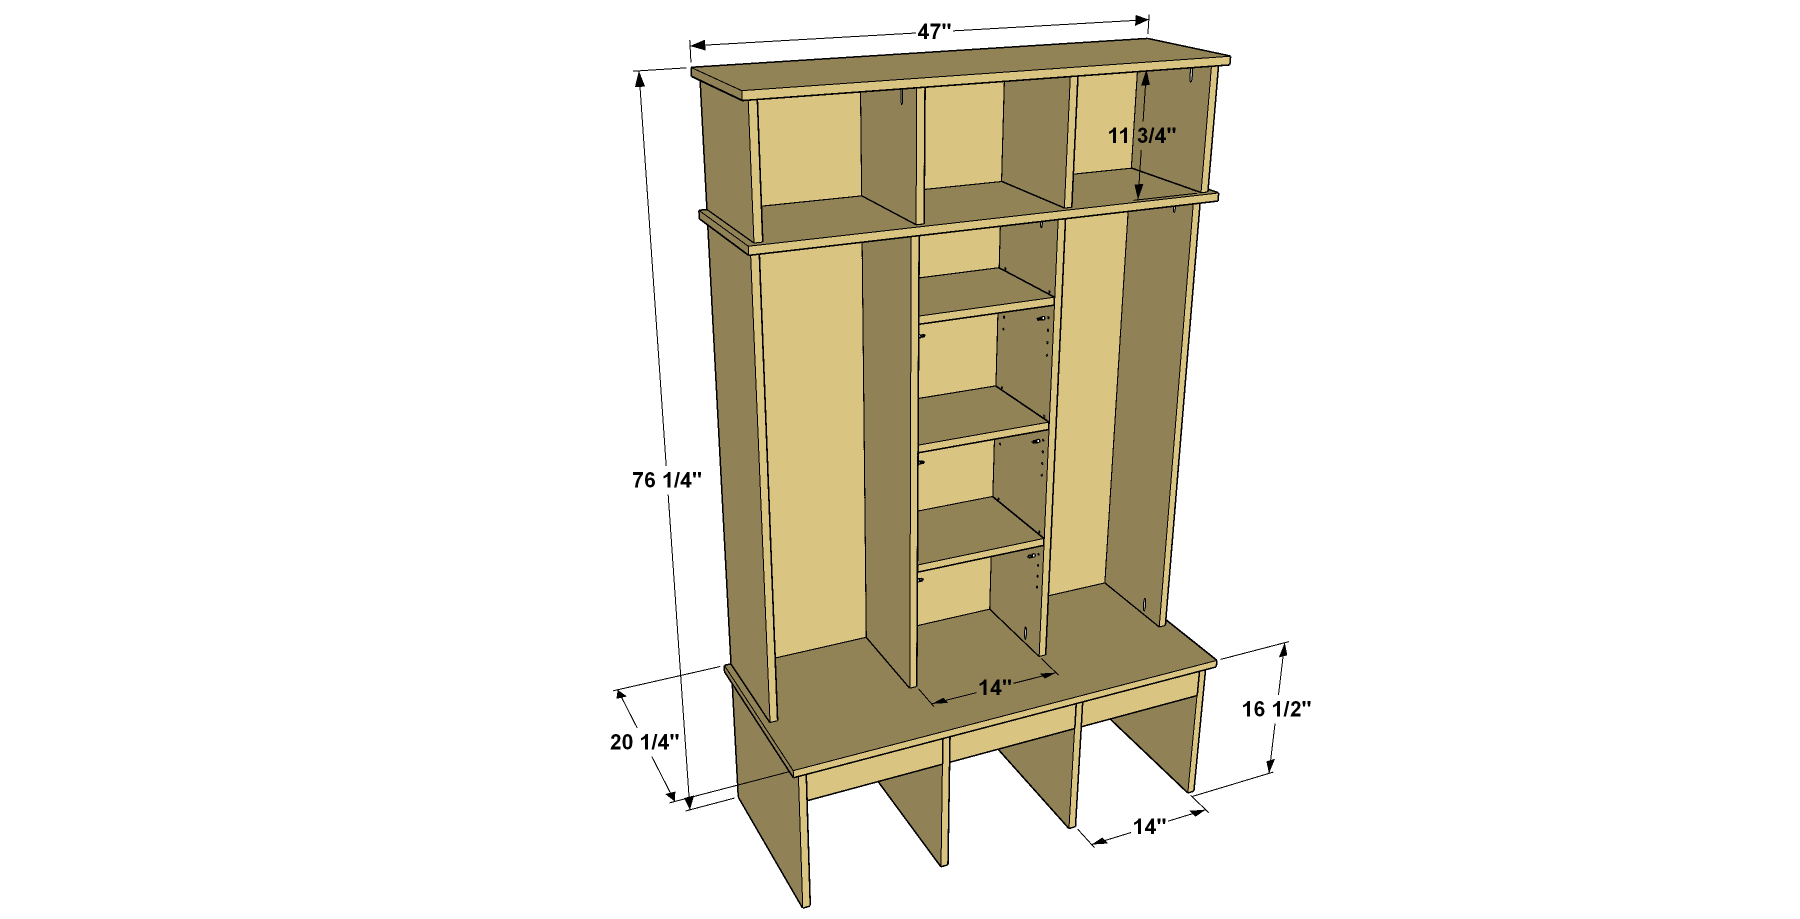 entryway-organizer-overall-with-dimensions